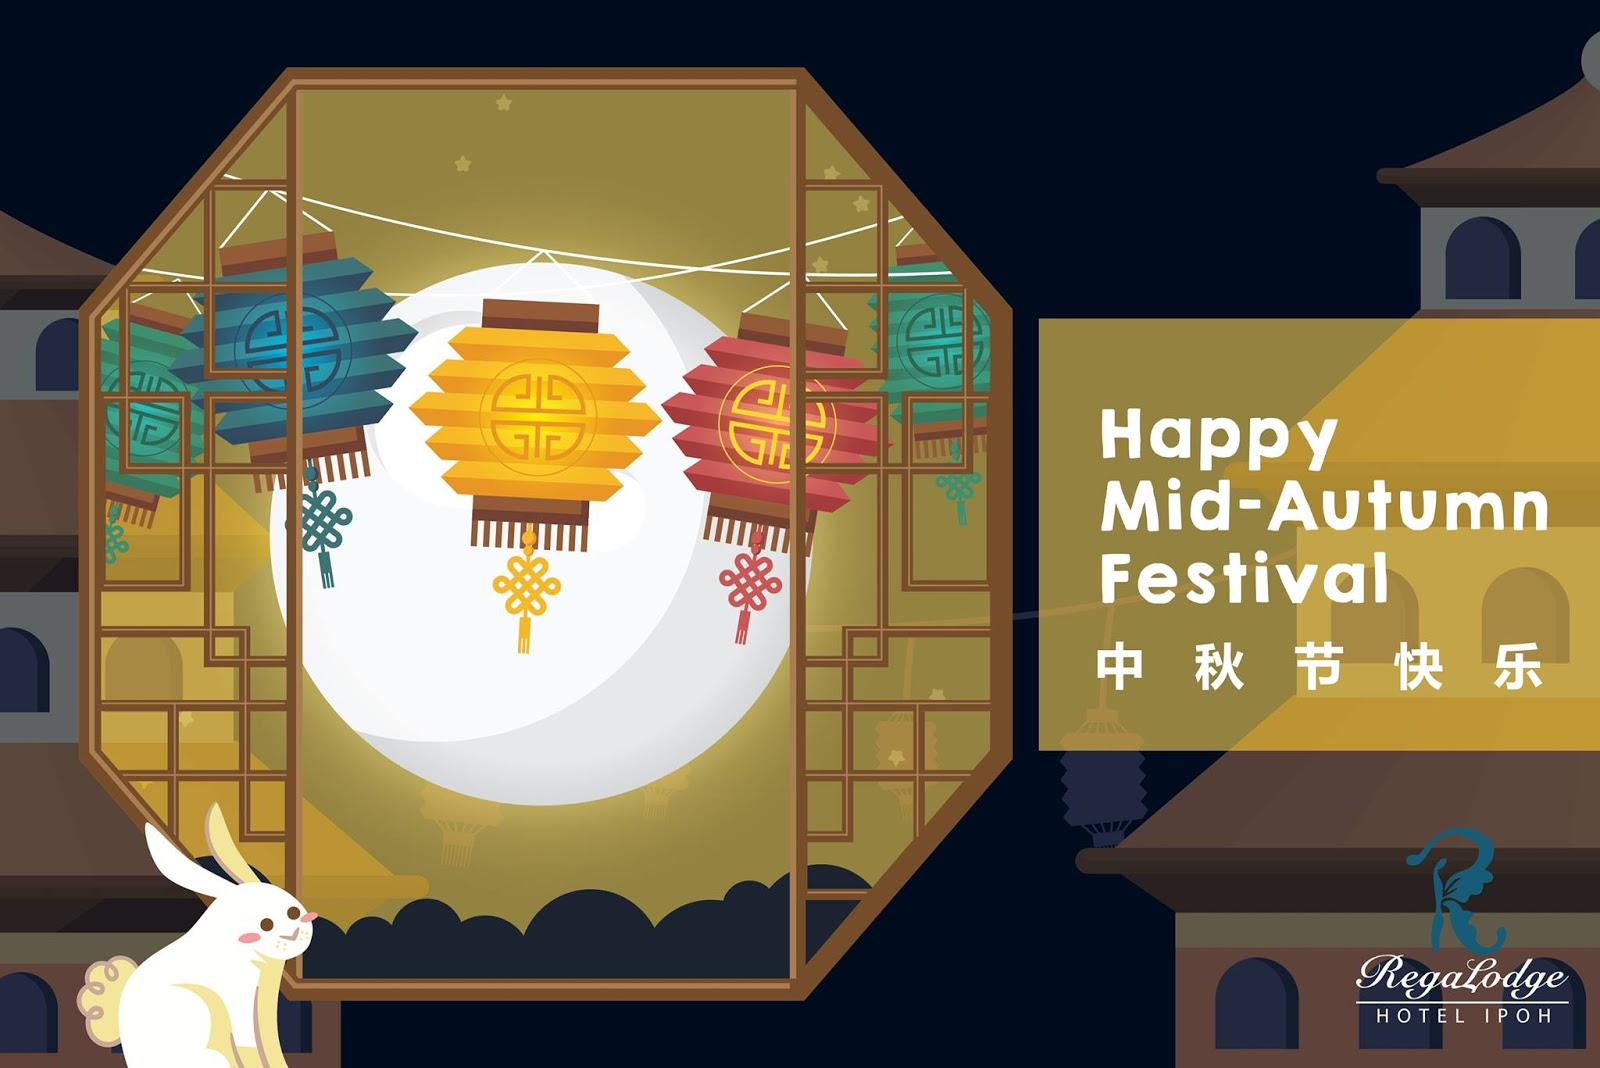 Mid-Autumn Festival Wishes Awesome Images, Pictures, Photos, Wallpapers